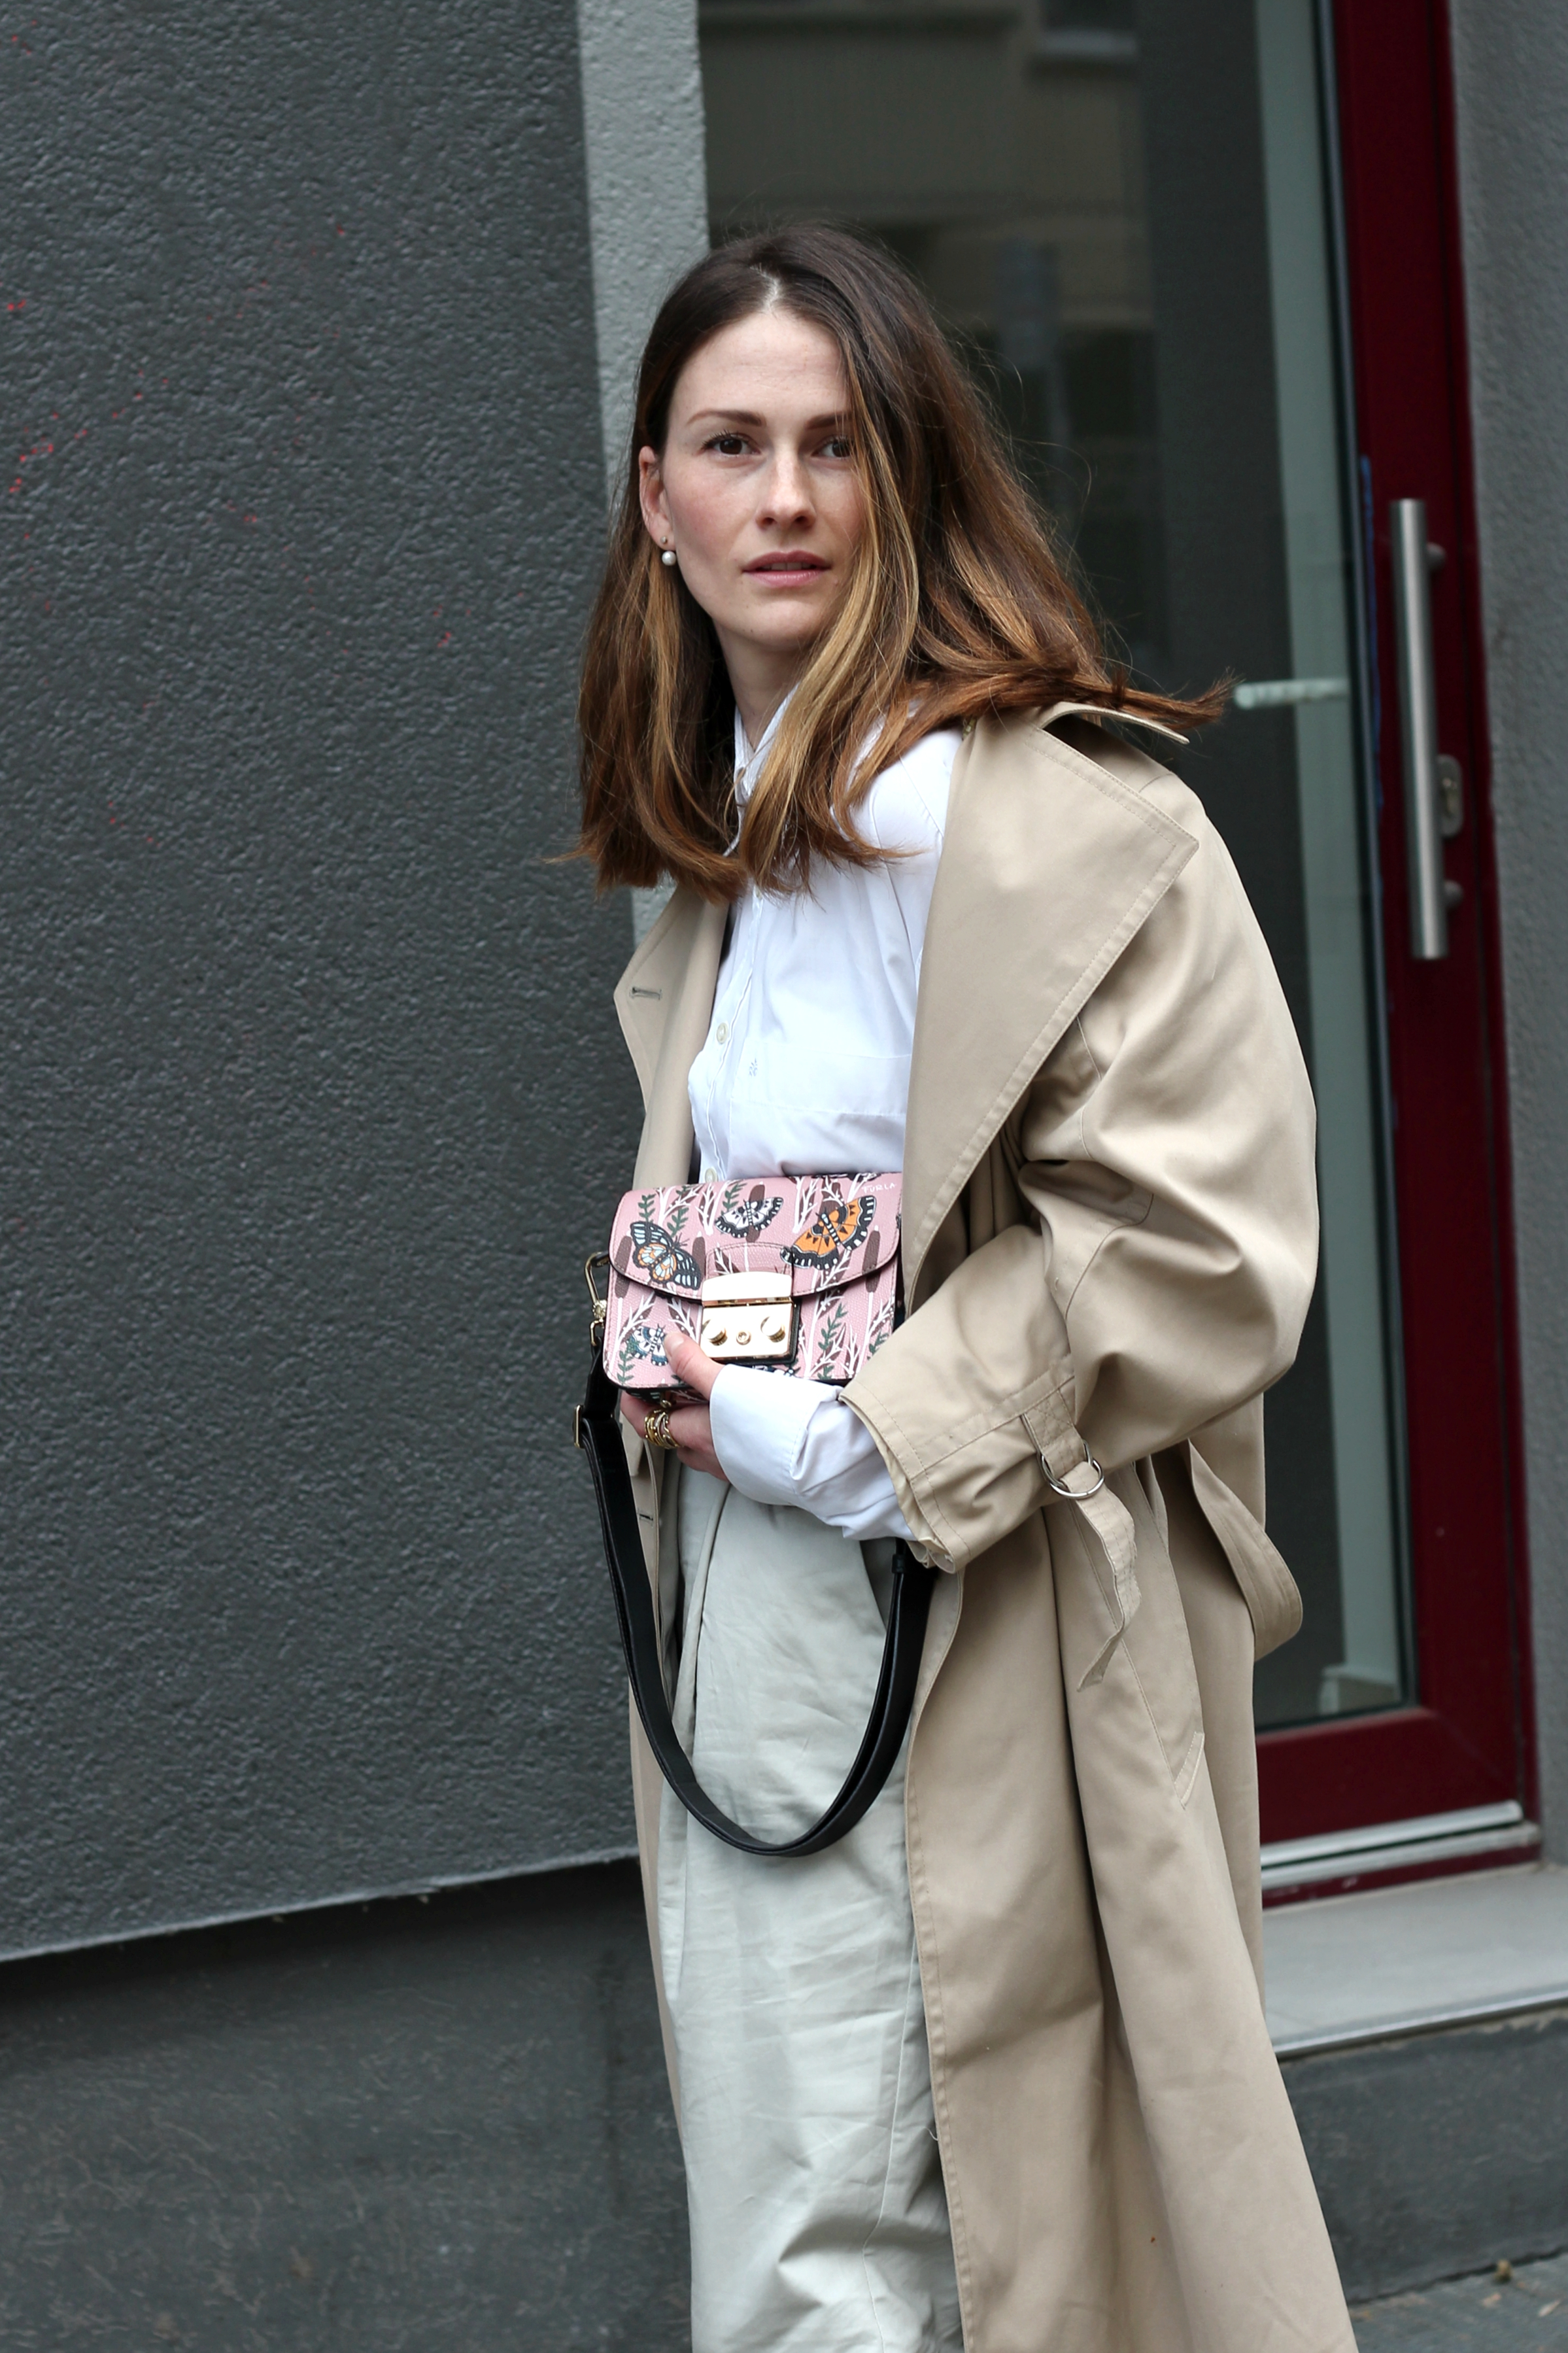 annaporter-portrait-trench-look-3